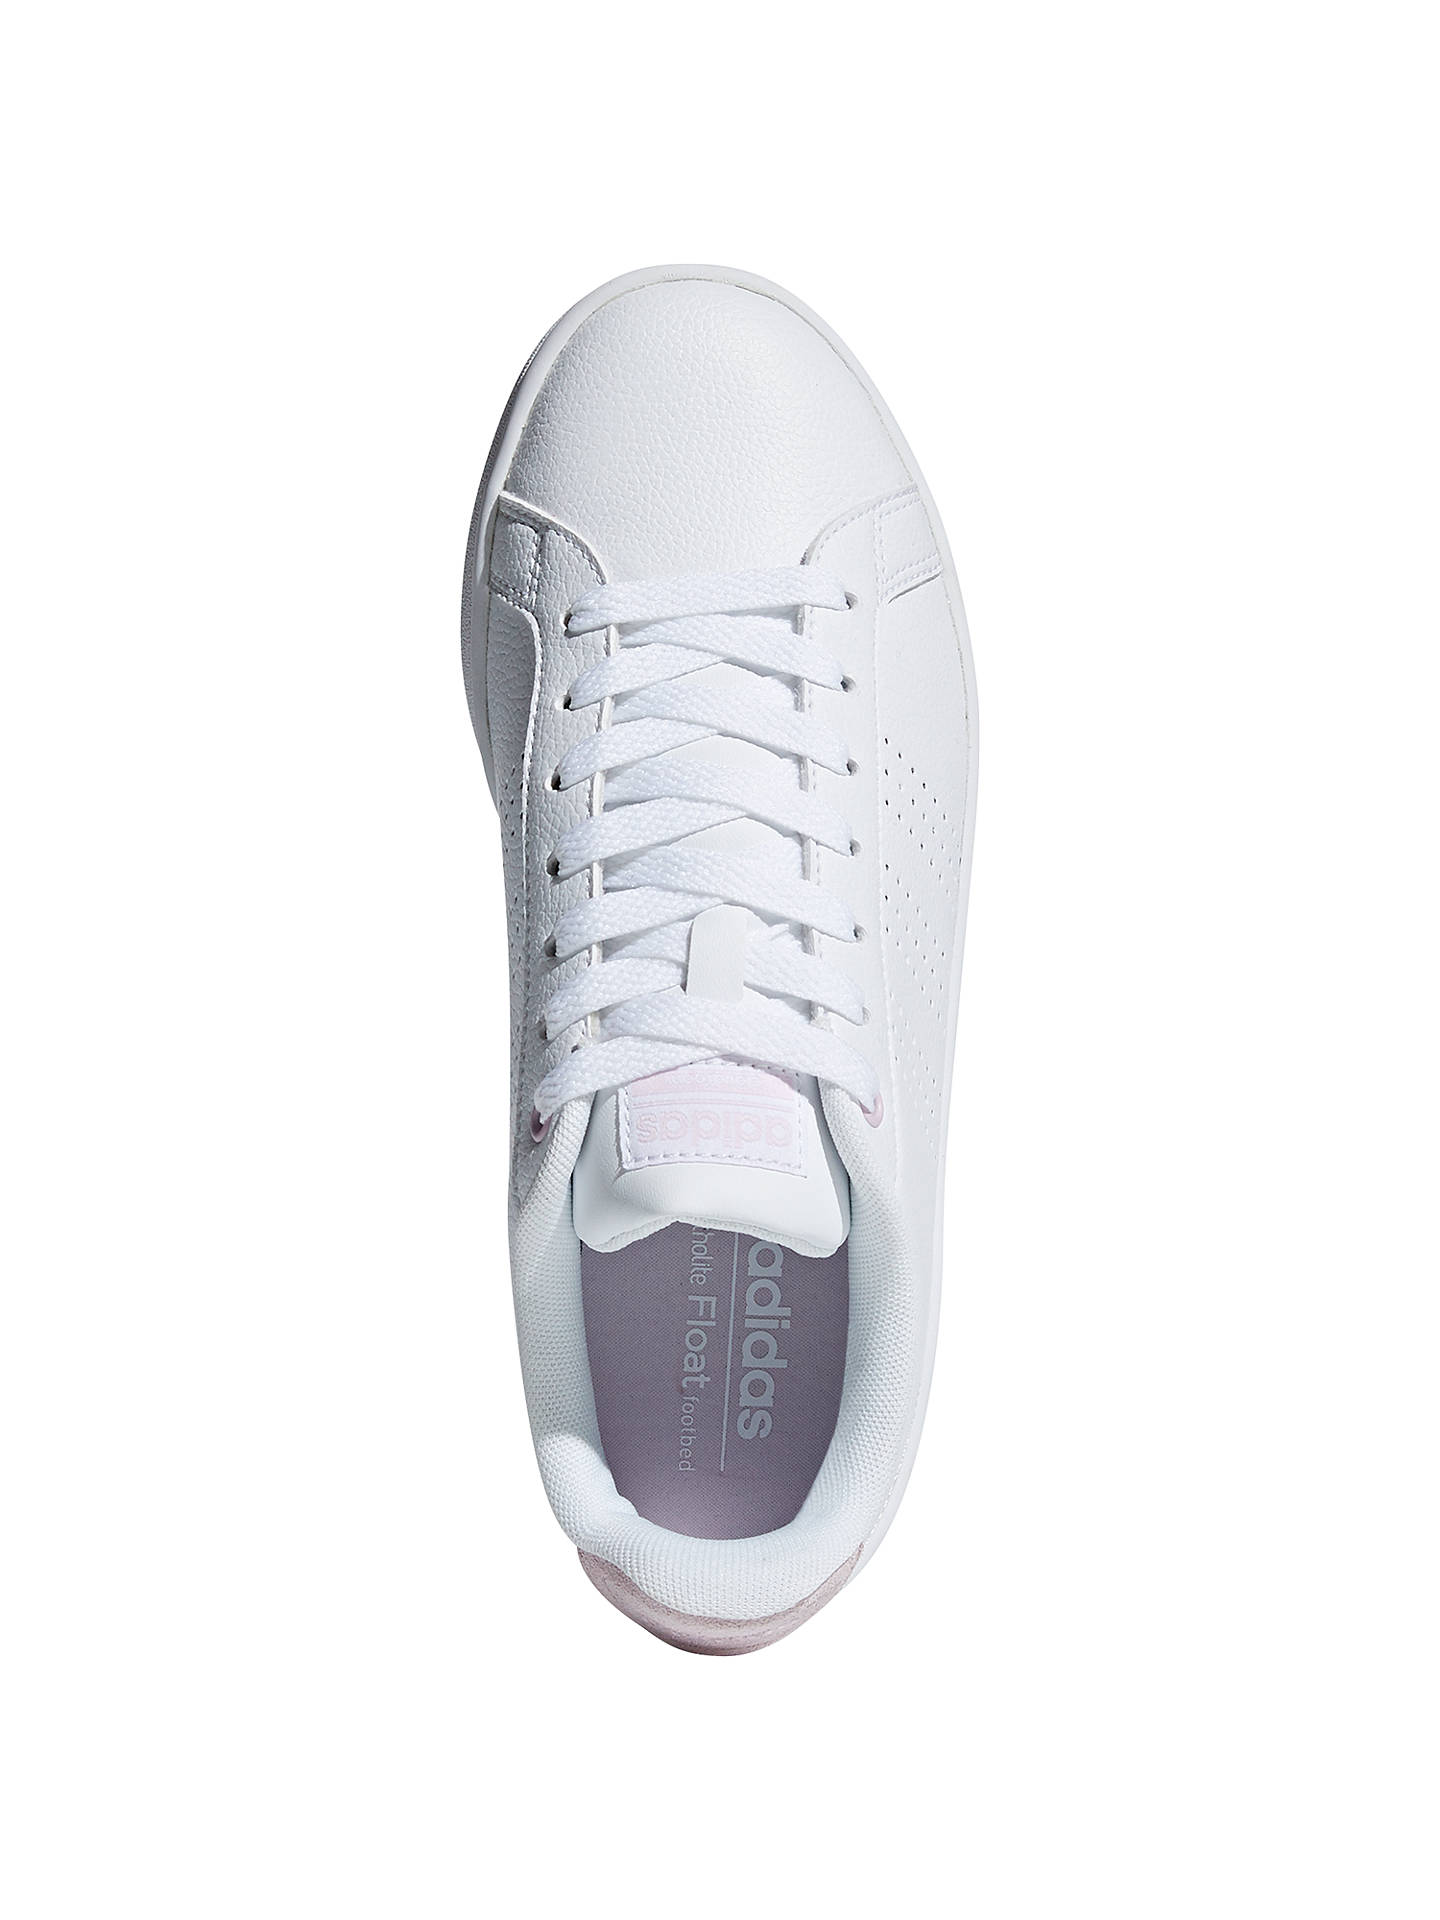 adidas Neo Cloudfoam Advantage Women's Trainers, WhitePink